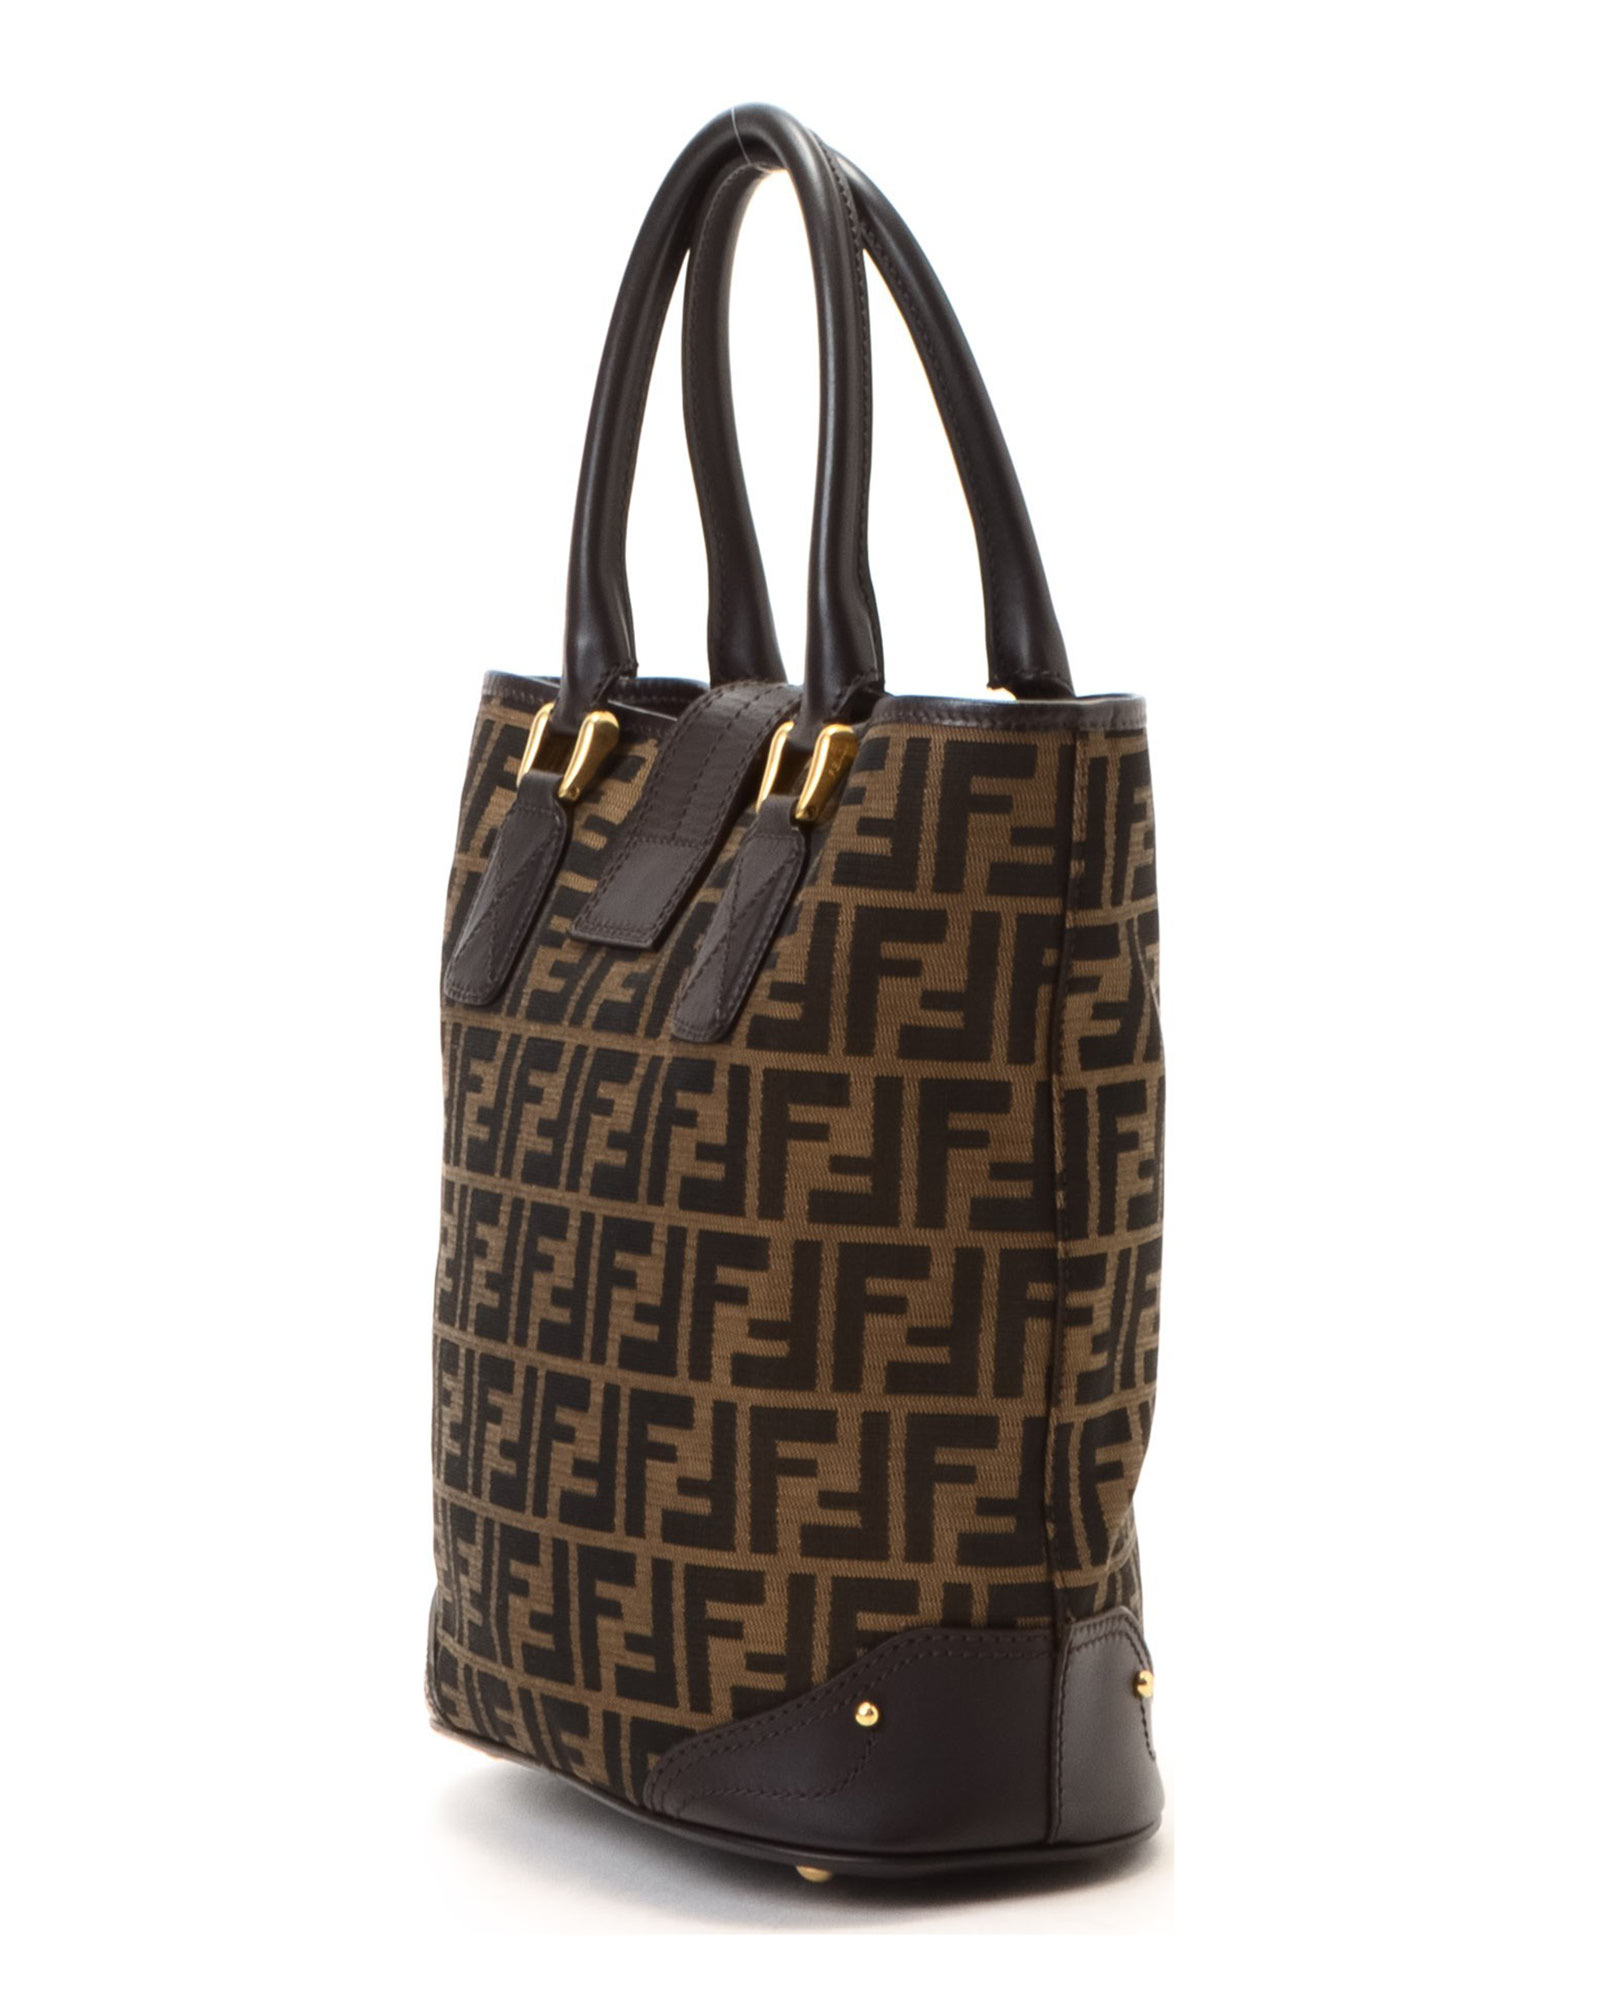 2c0ac937815 ... low price lyst fendi brown tote bag vintage in brown 3e1a2 26668